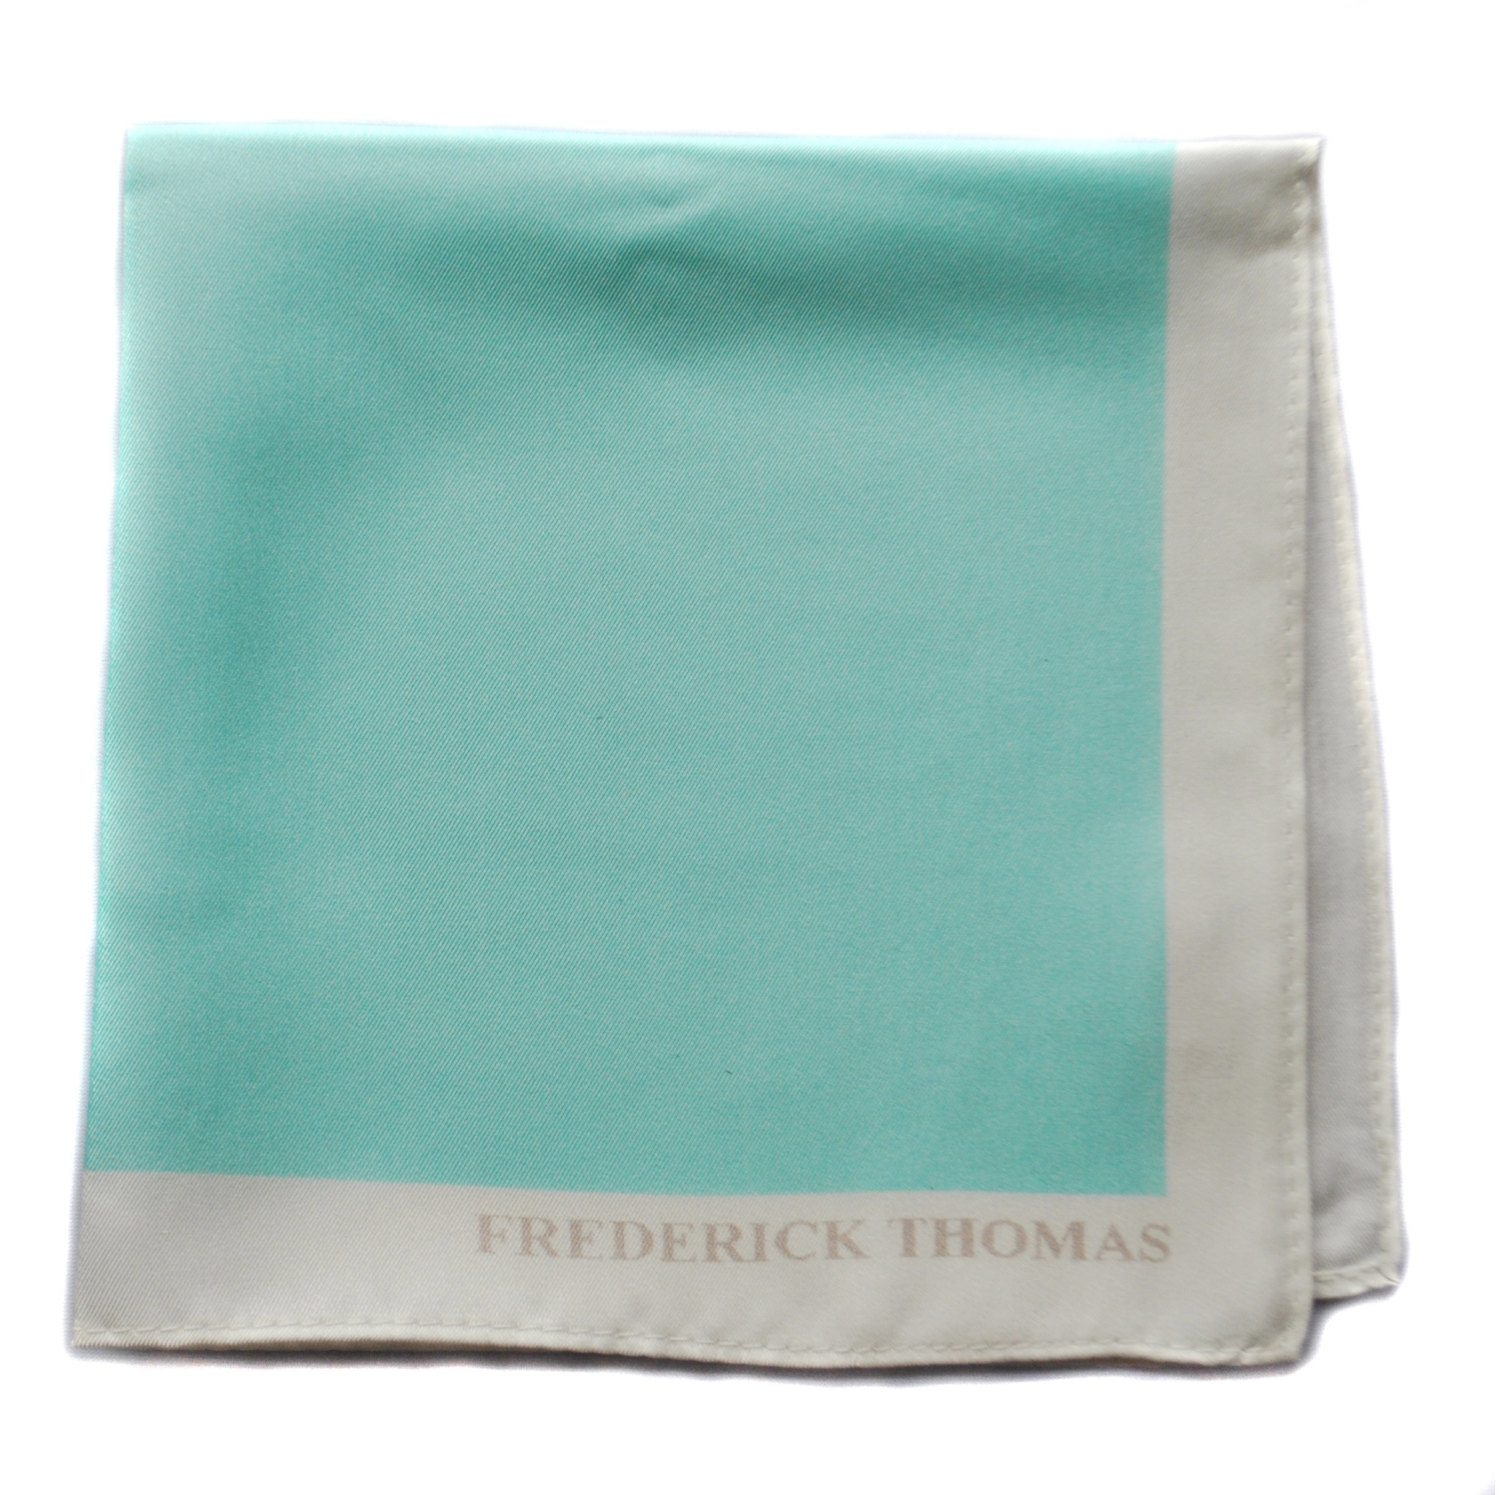 Frederick Thomas turquoise pocket square with white edging FT1667